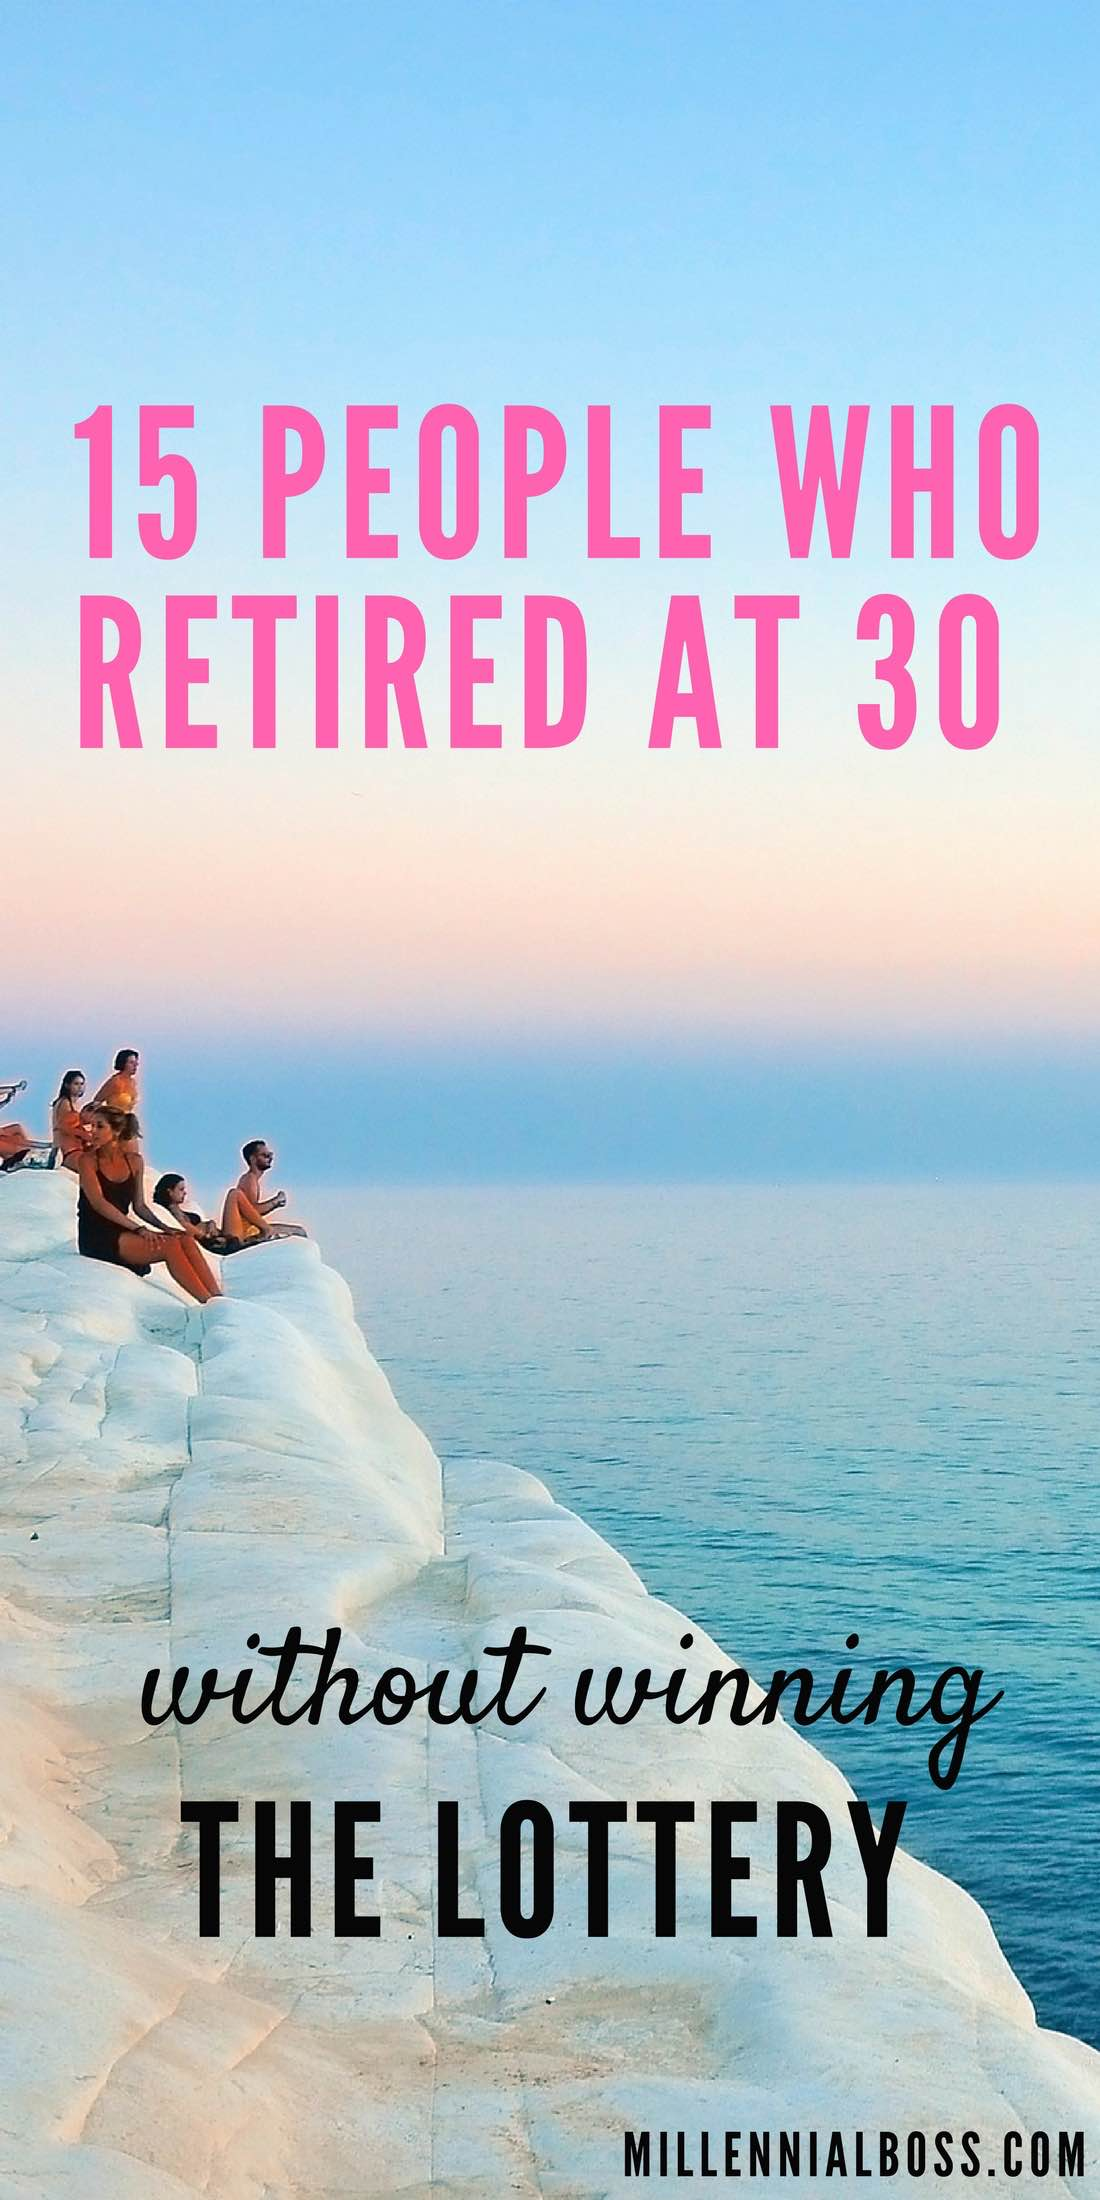 Wow! I didn't even think early retirement was possible for the average person. This story is nuts!